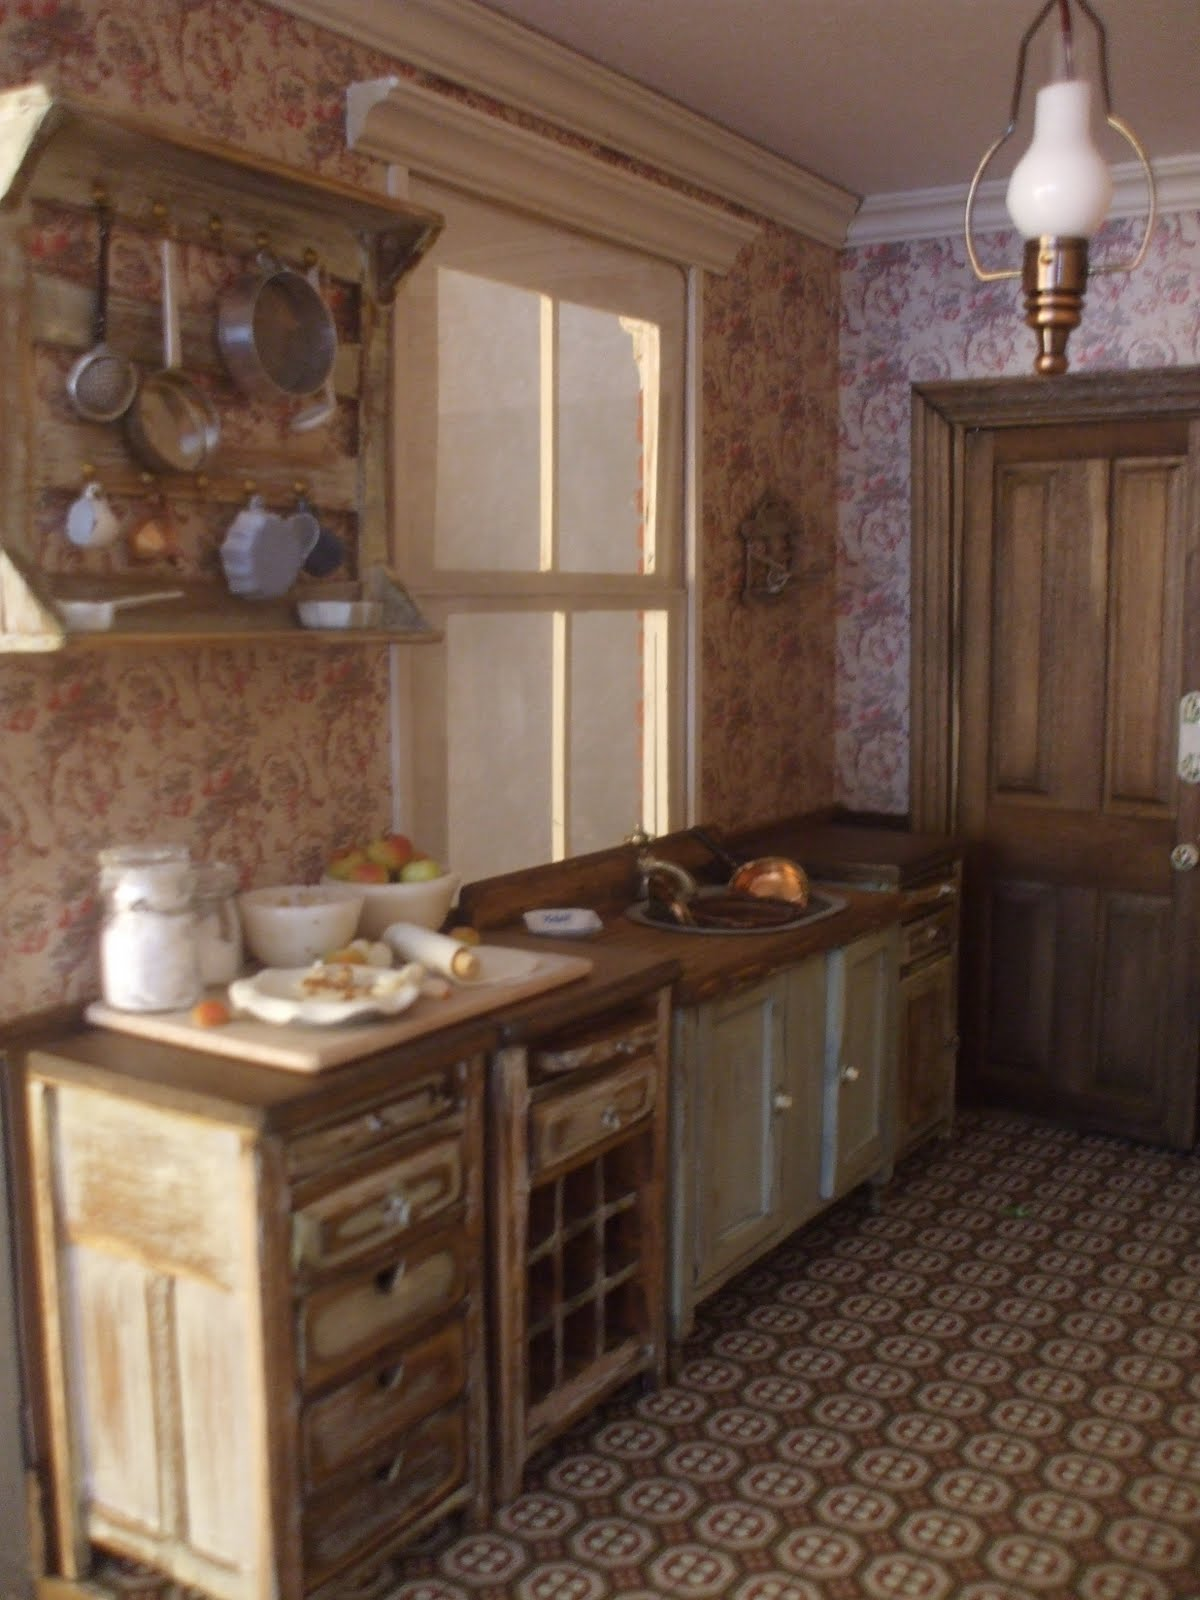 Diary of an edwardian dolls house interior decorating and for Edwardian kitchen